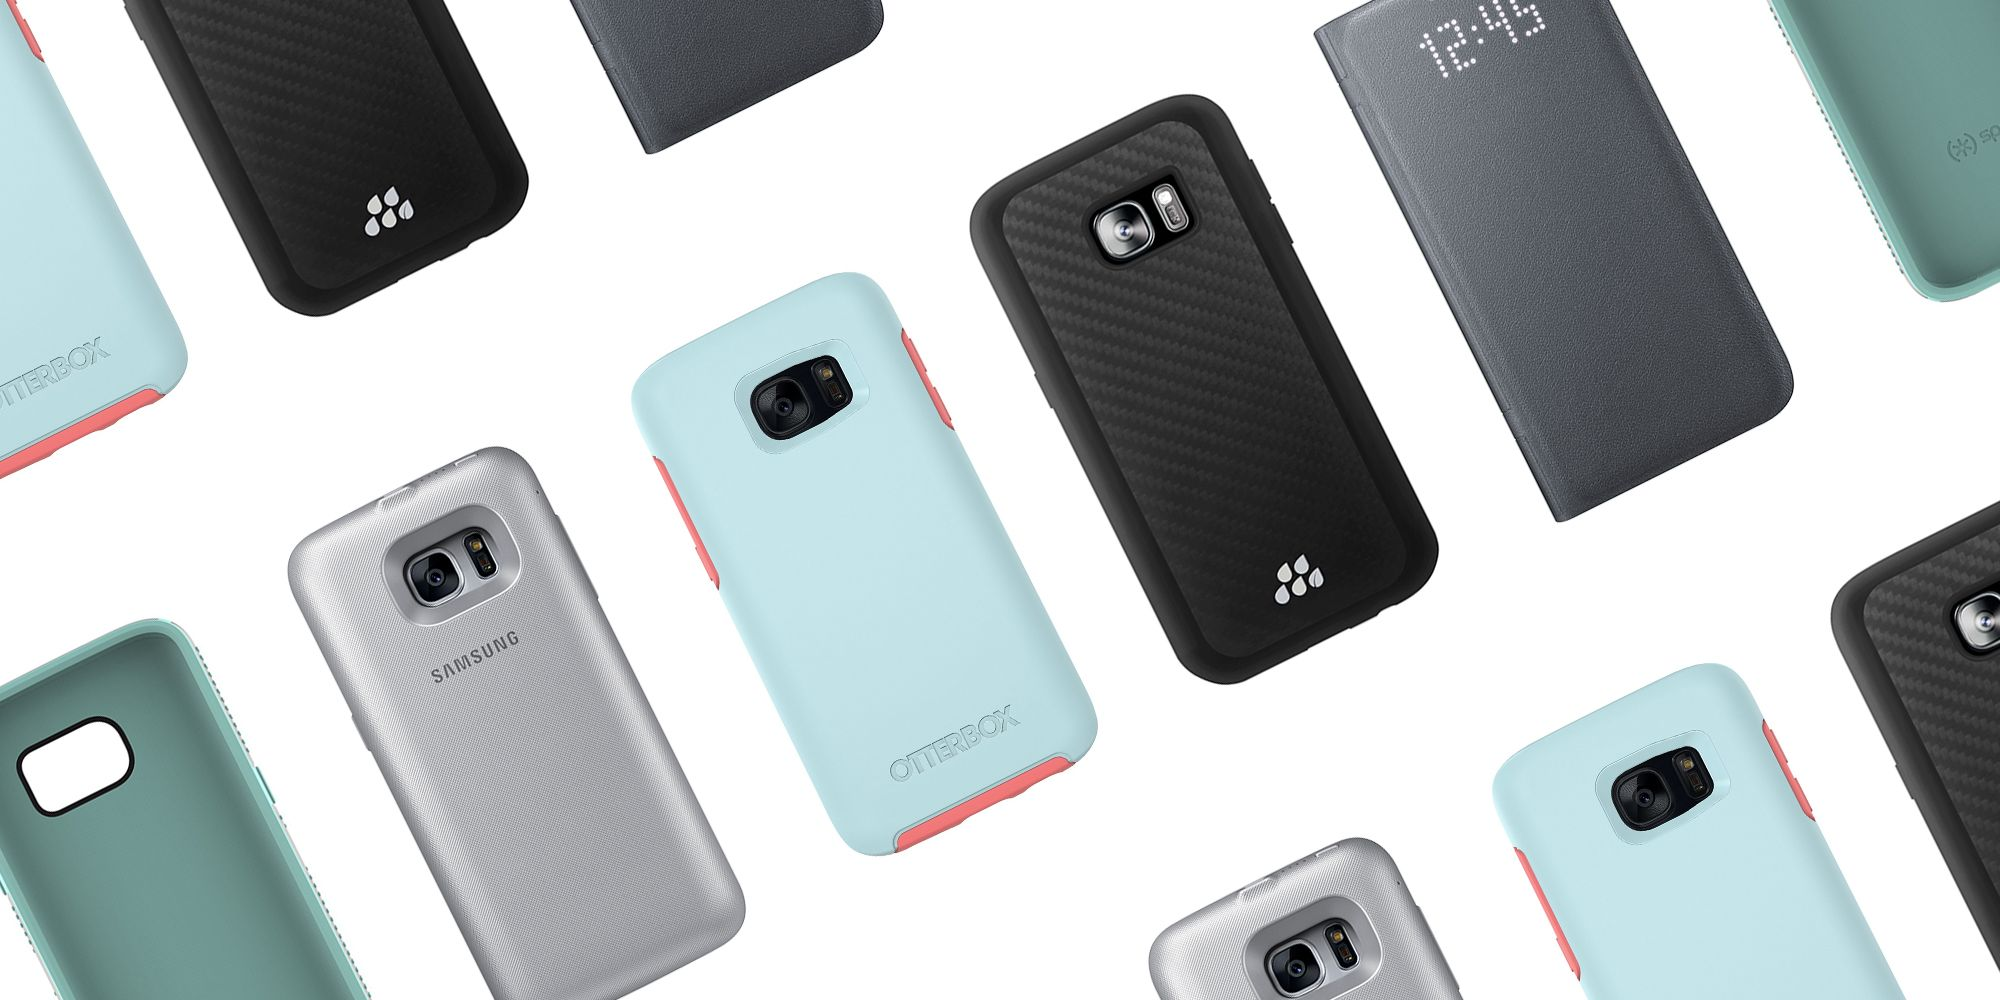 Smartphone Cases 10 Best Samsung Galaxy S7 Cases In 2018 Protective Samsung